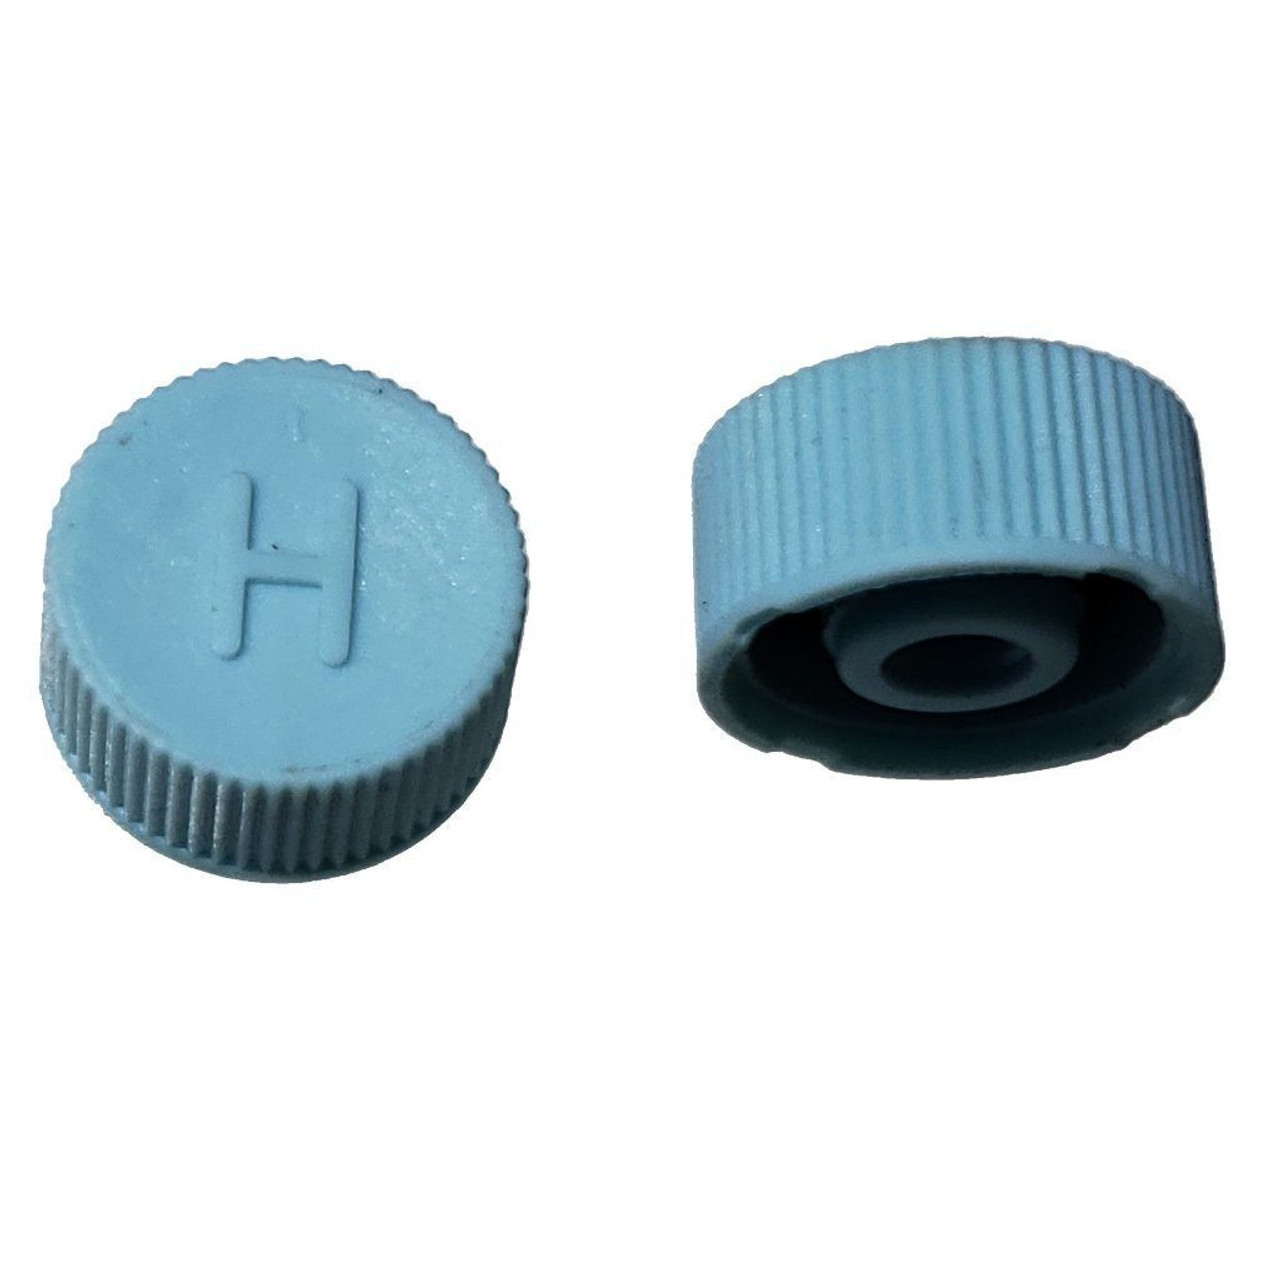 AC Service Port Cap R134a - Blue High Side M10x1.25 - Interchanges: MT0311, 69501